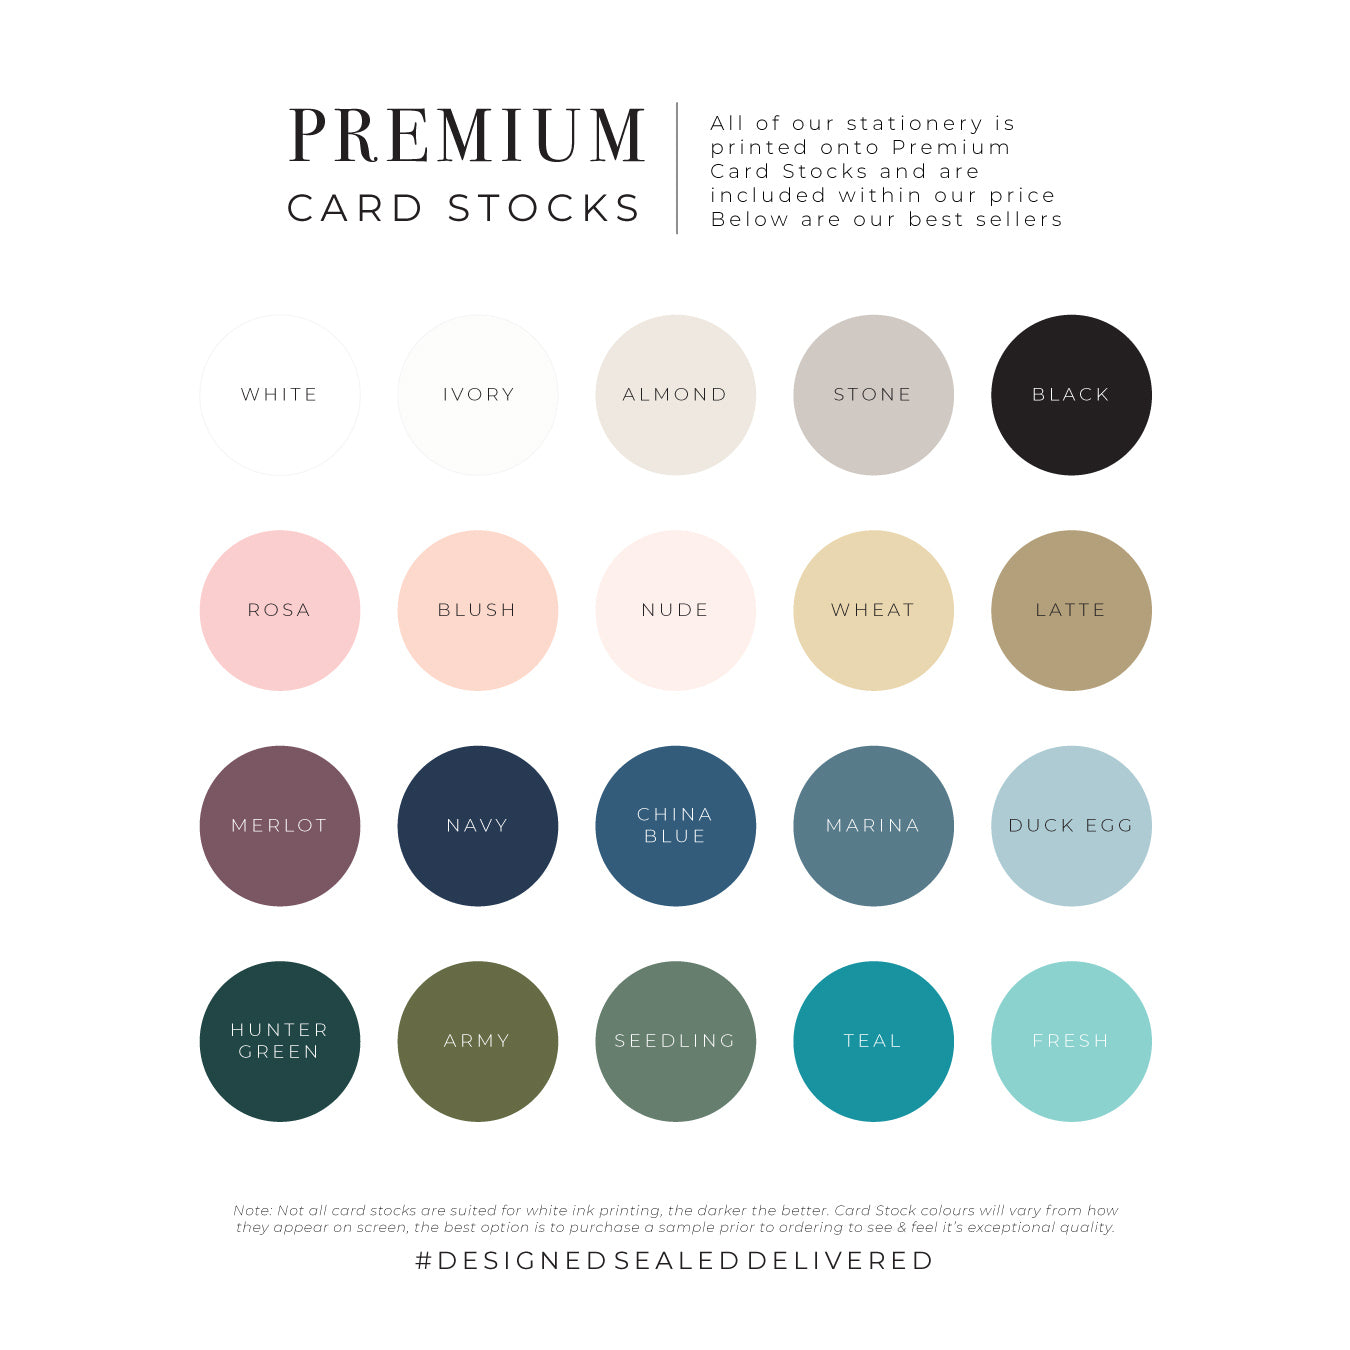 DSD Premium Card Stock Best seller colours swatches